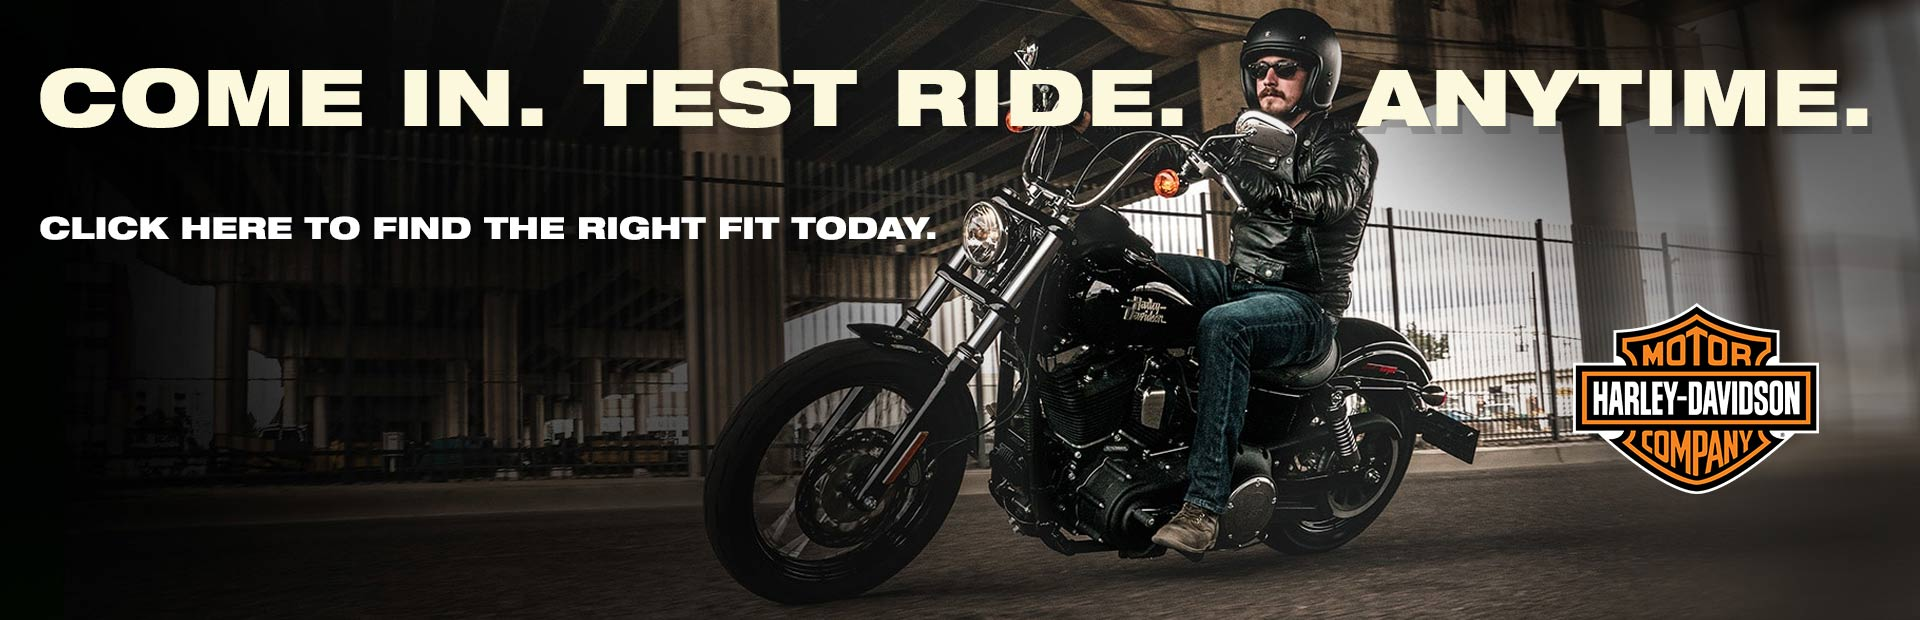 Harley-Davidson®: Come in for a test ride anytime.